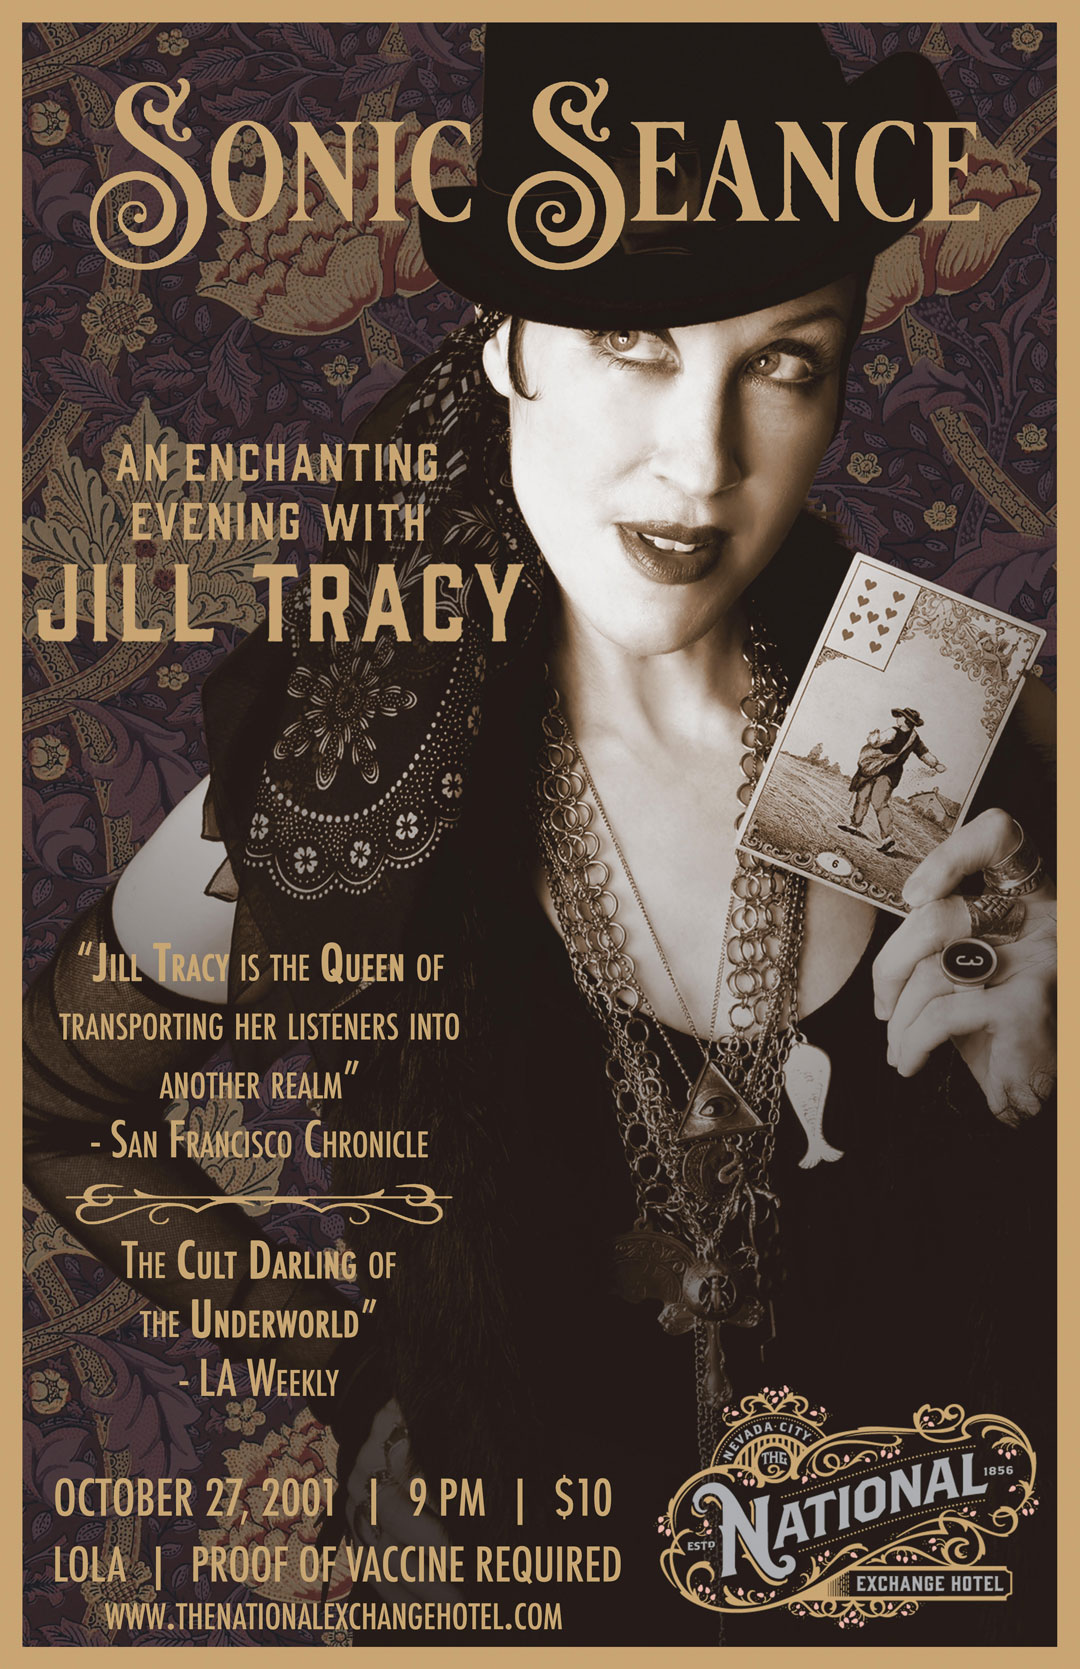 Jill Tracy's SOnic Seance at the National HOtel